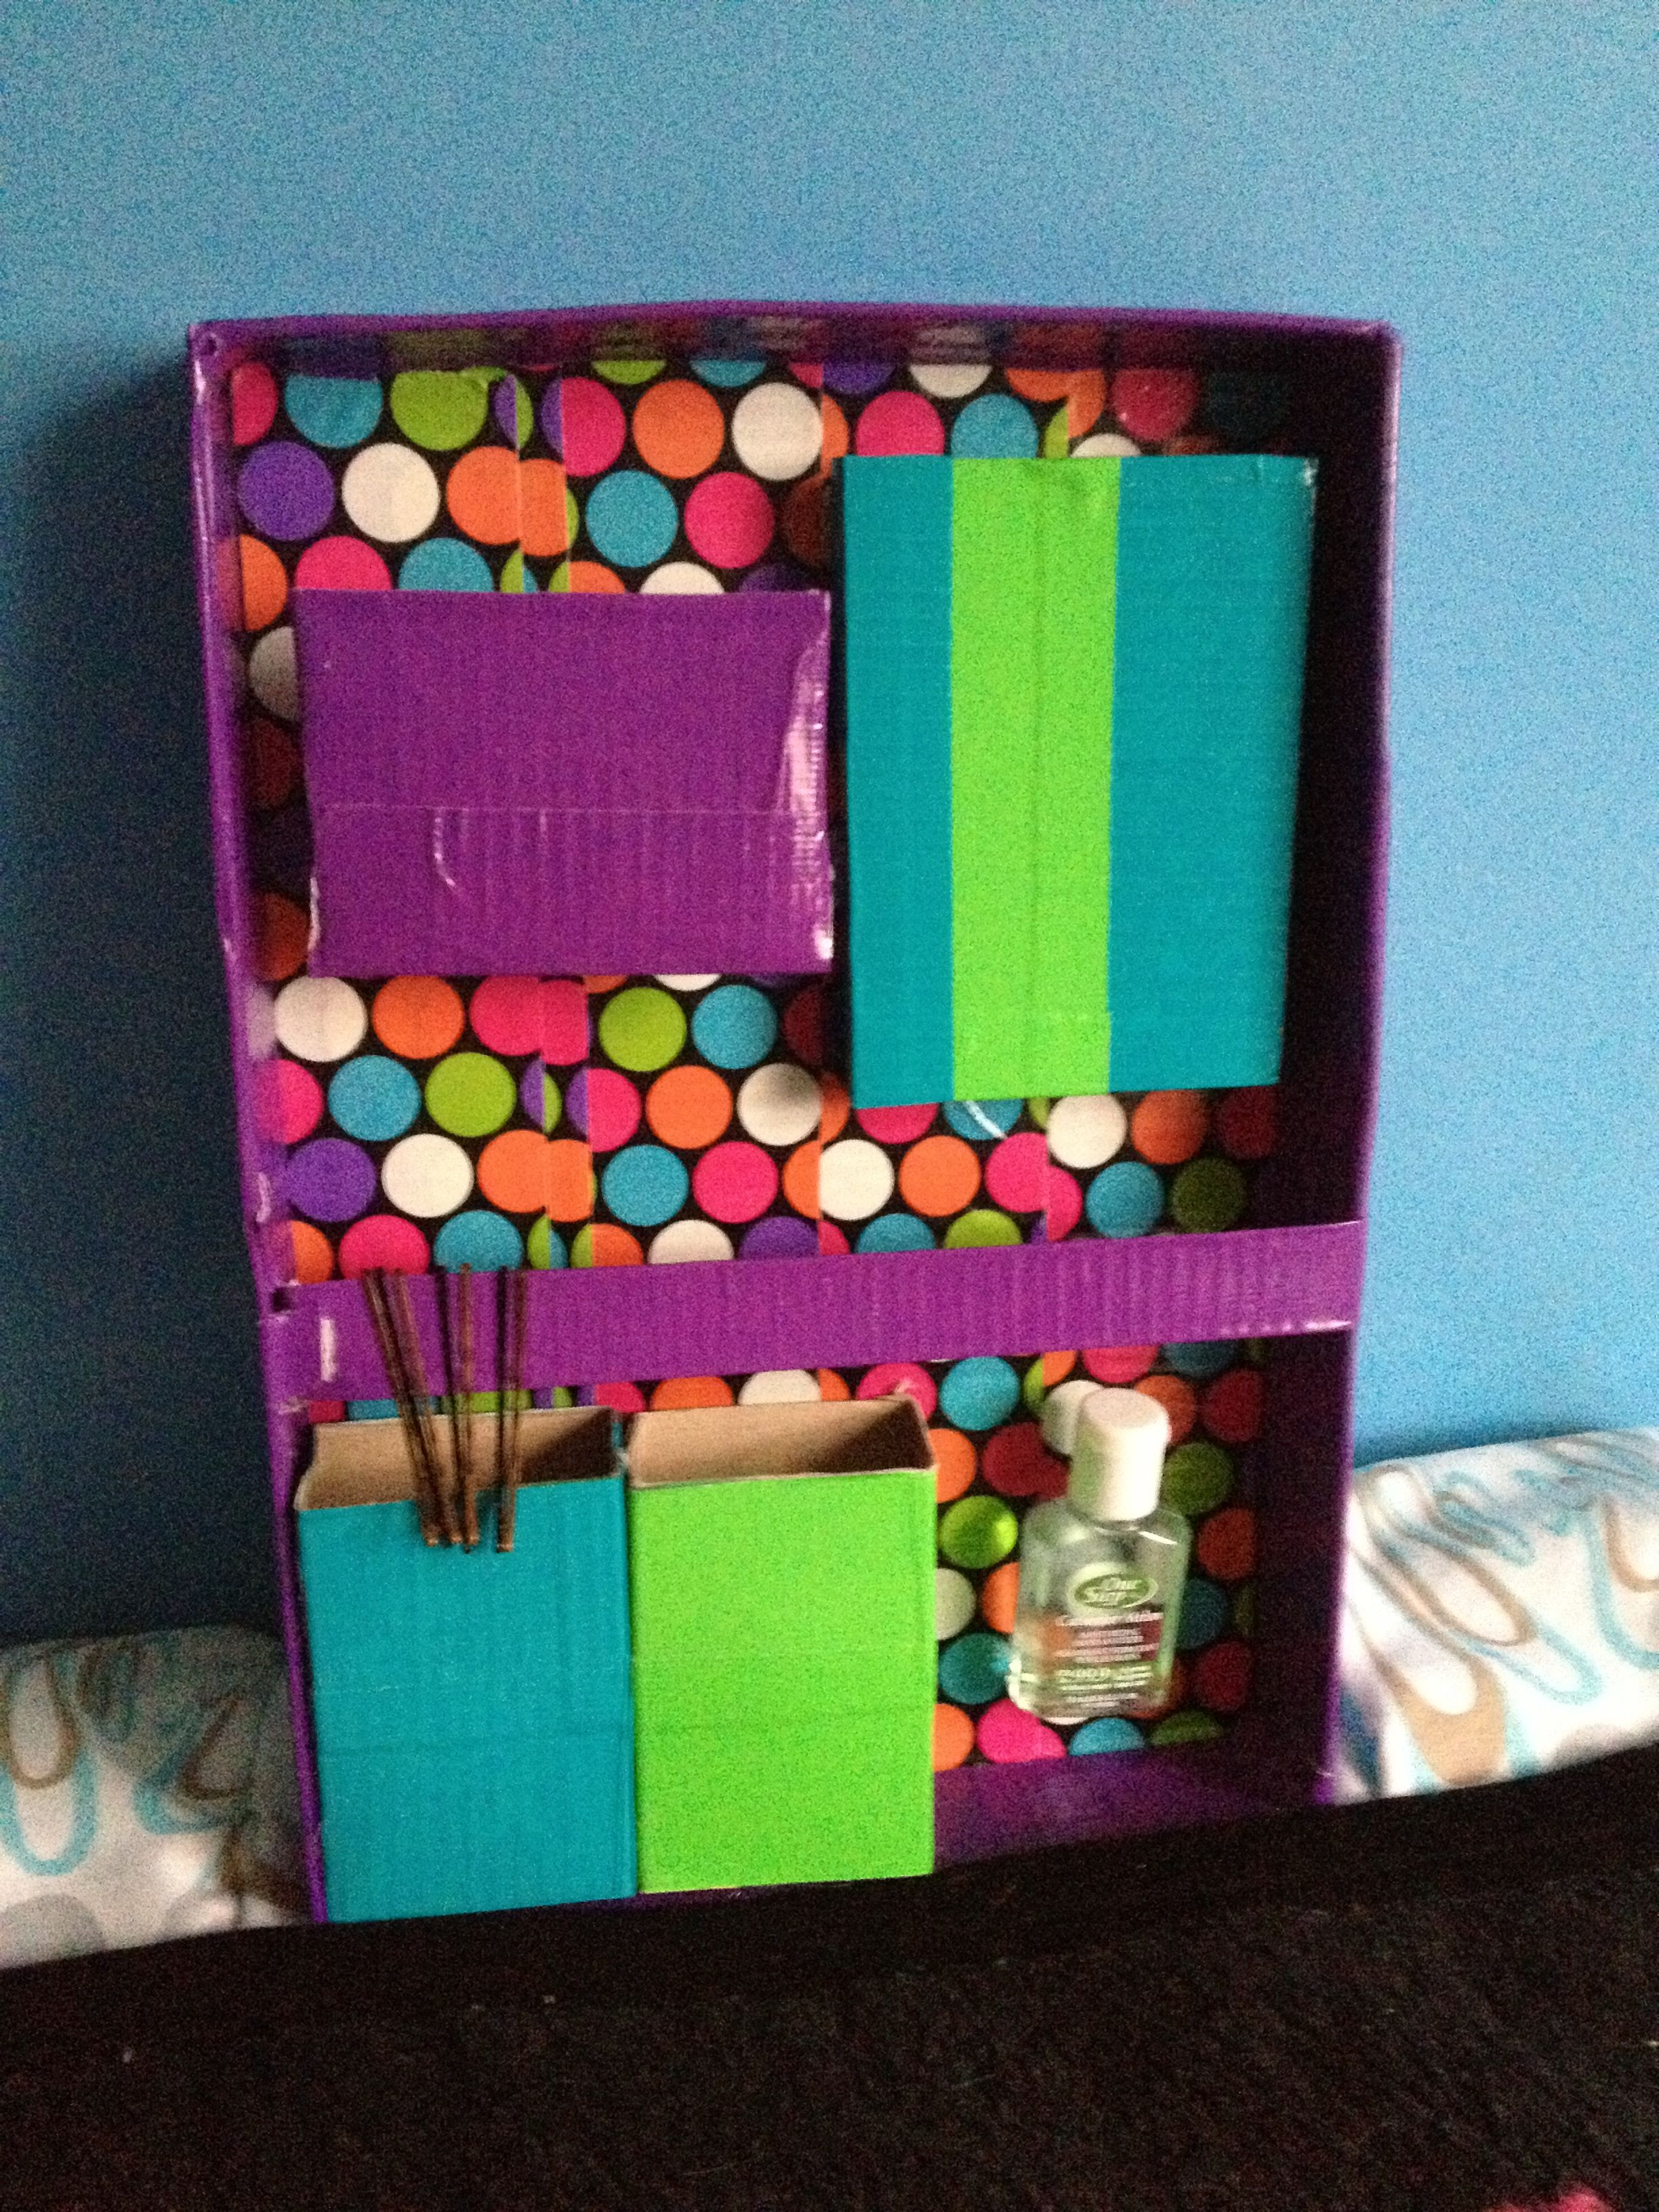 Best ideas about Locker Organizer DIY . Save or Pin Back to school locker organizer Use duct tape a shoe box Now.